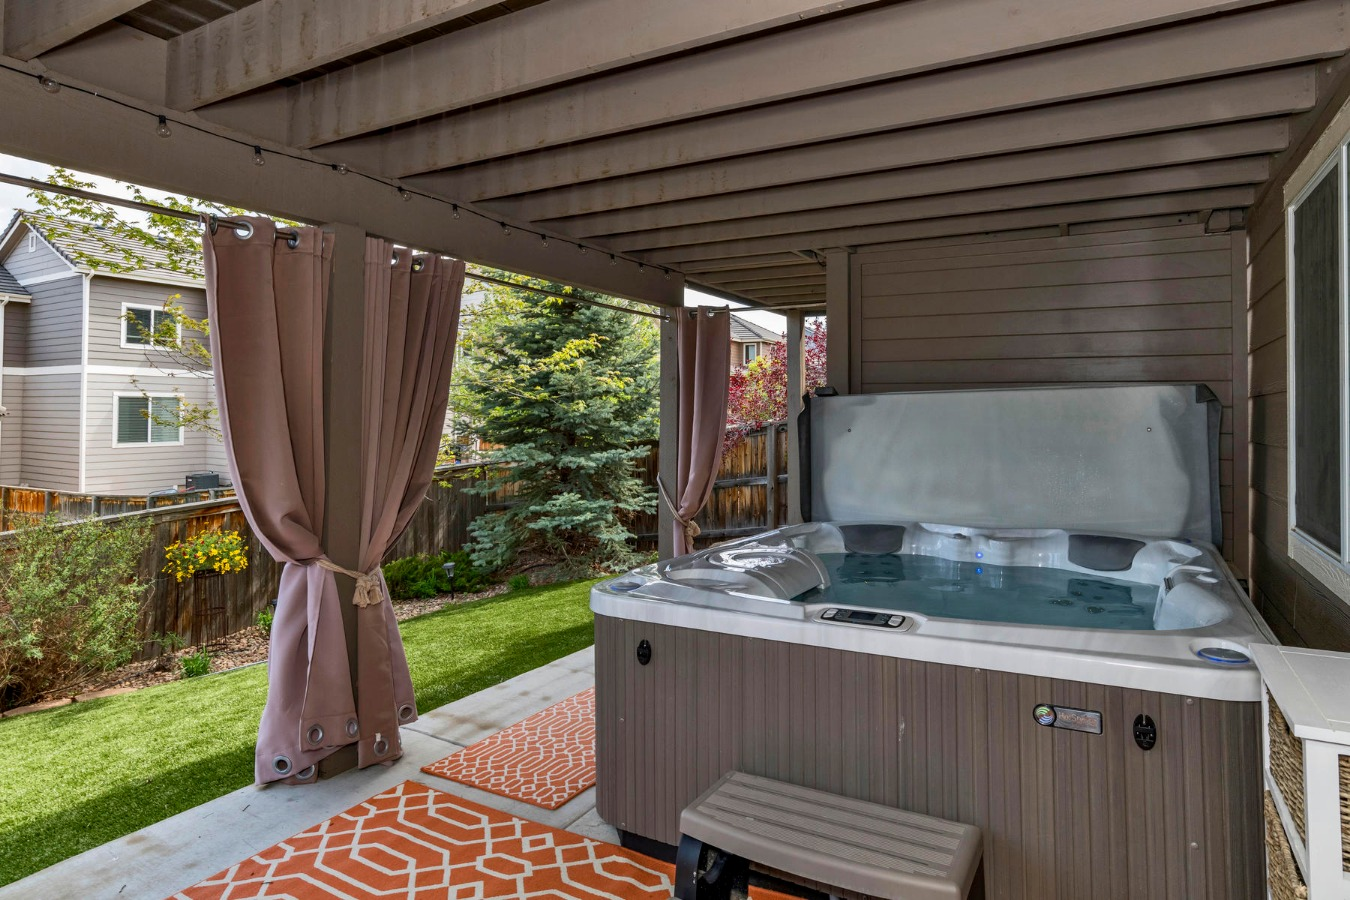 Like New Sundance Hot Tub for Extra Fun or Therapy